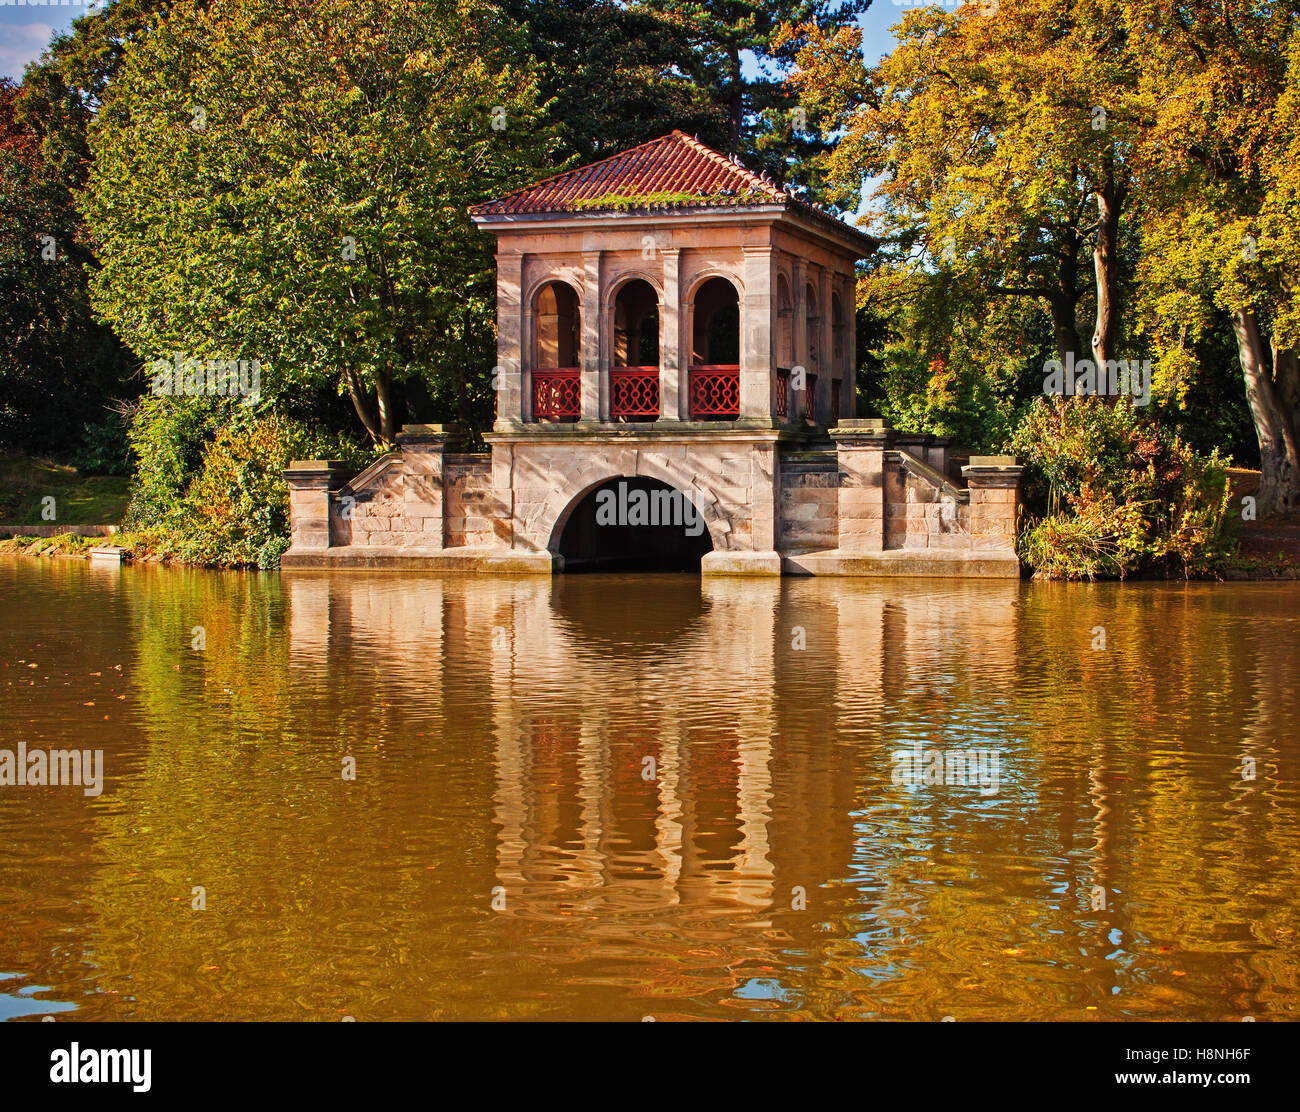 Lakeside reflections of the boathouse at Birkenhead Park - Stock Image